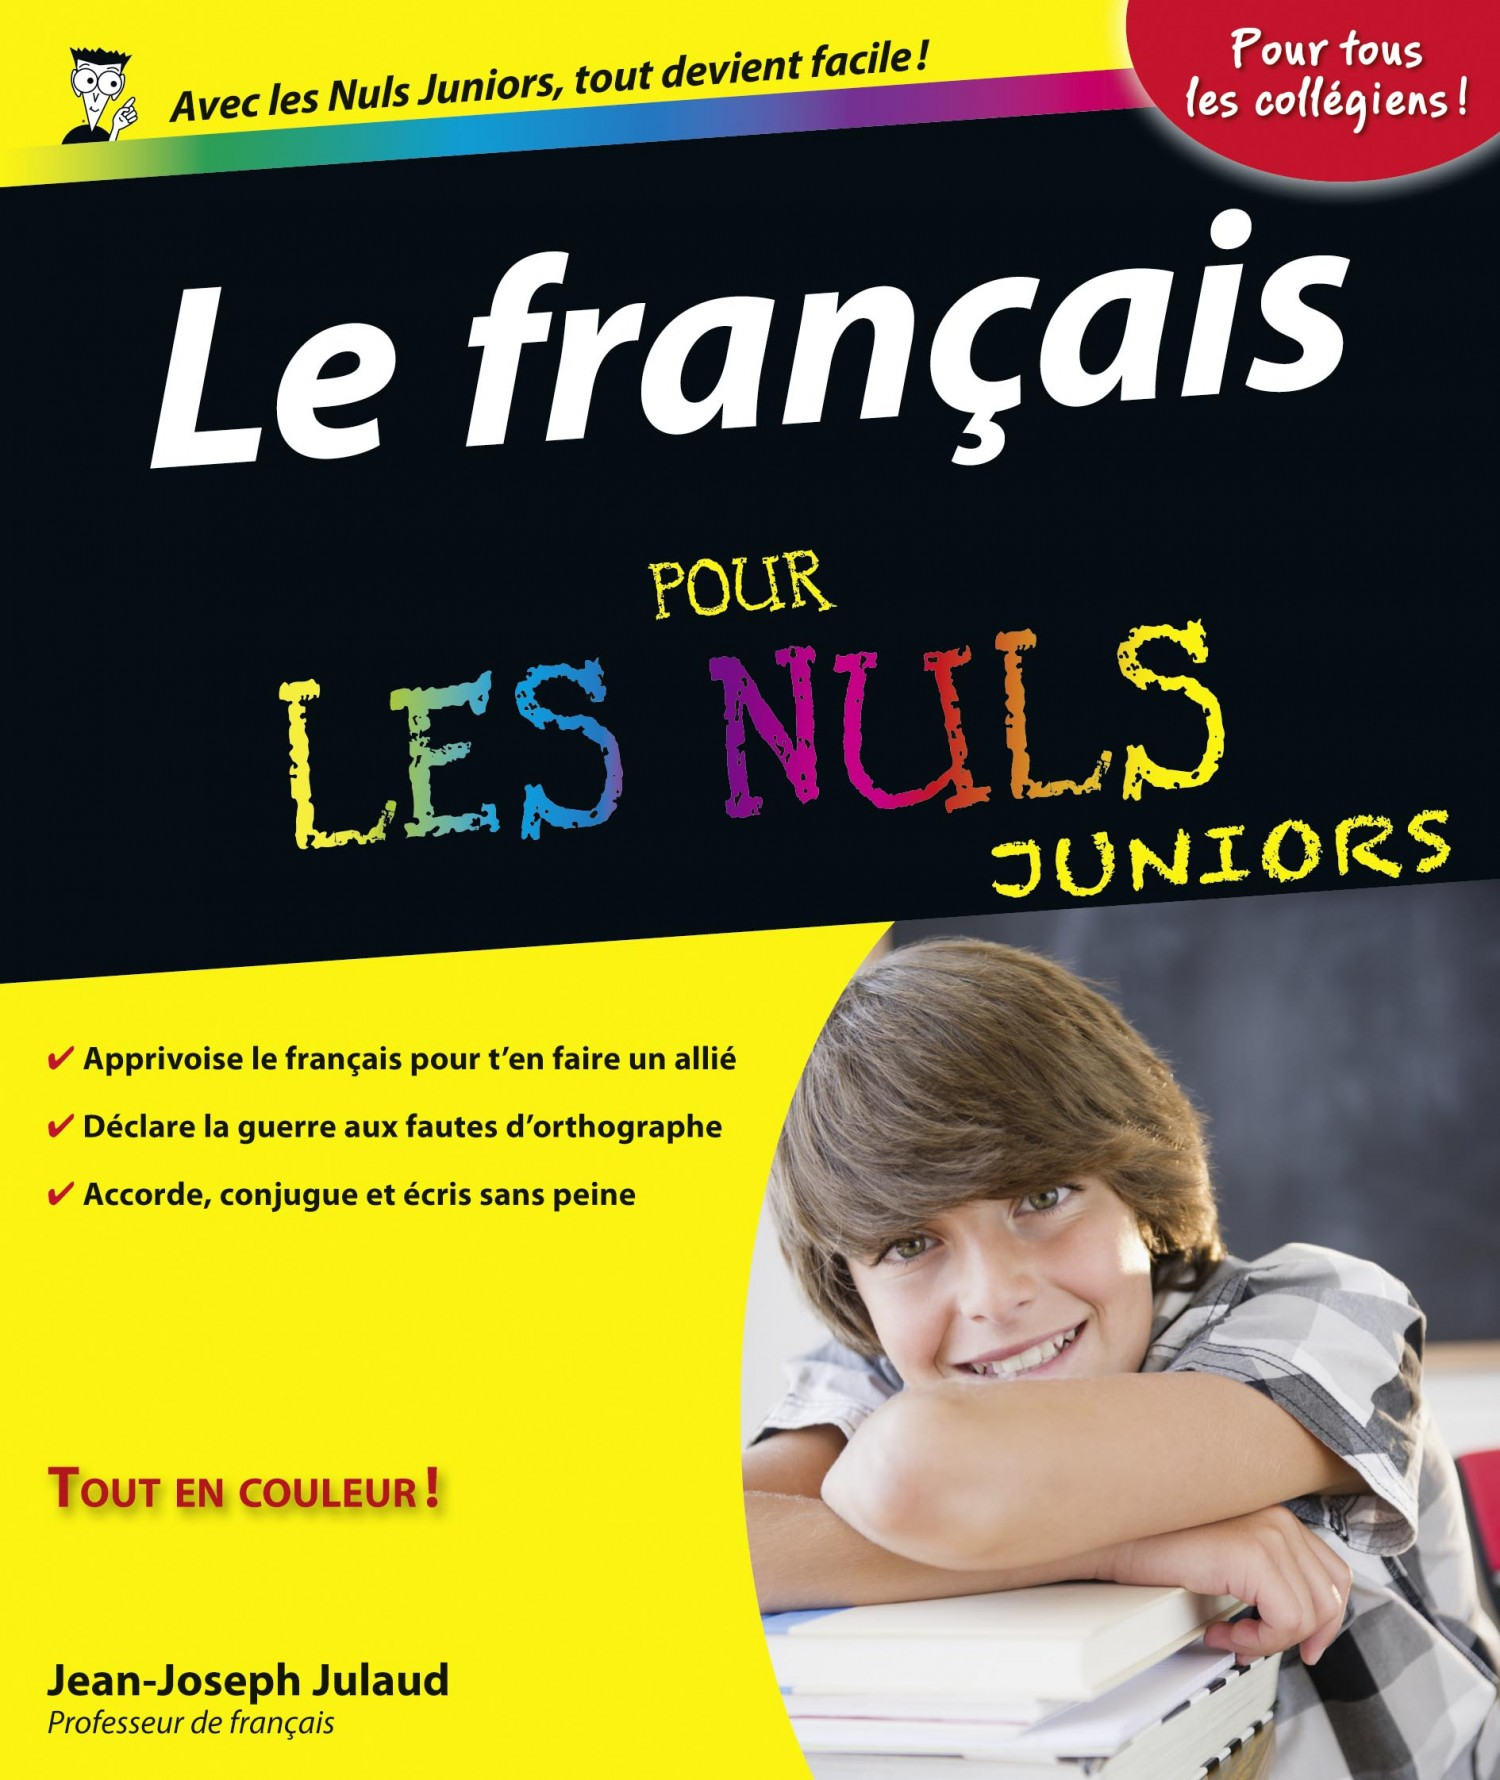 Le franais pour les Nuls juniors